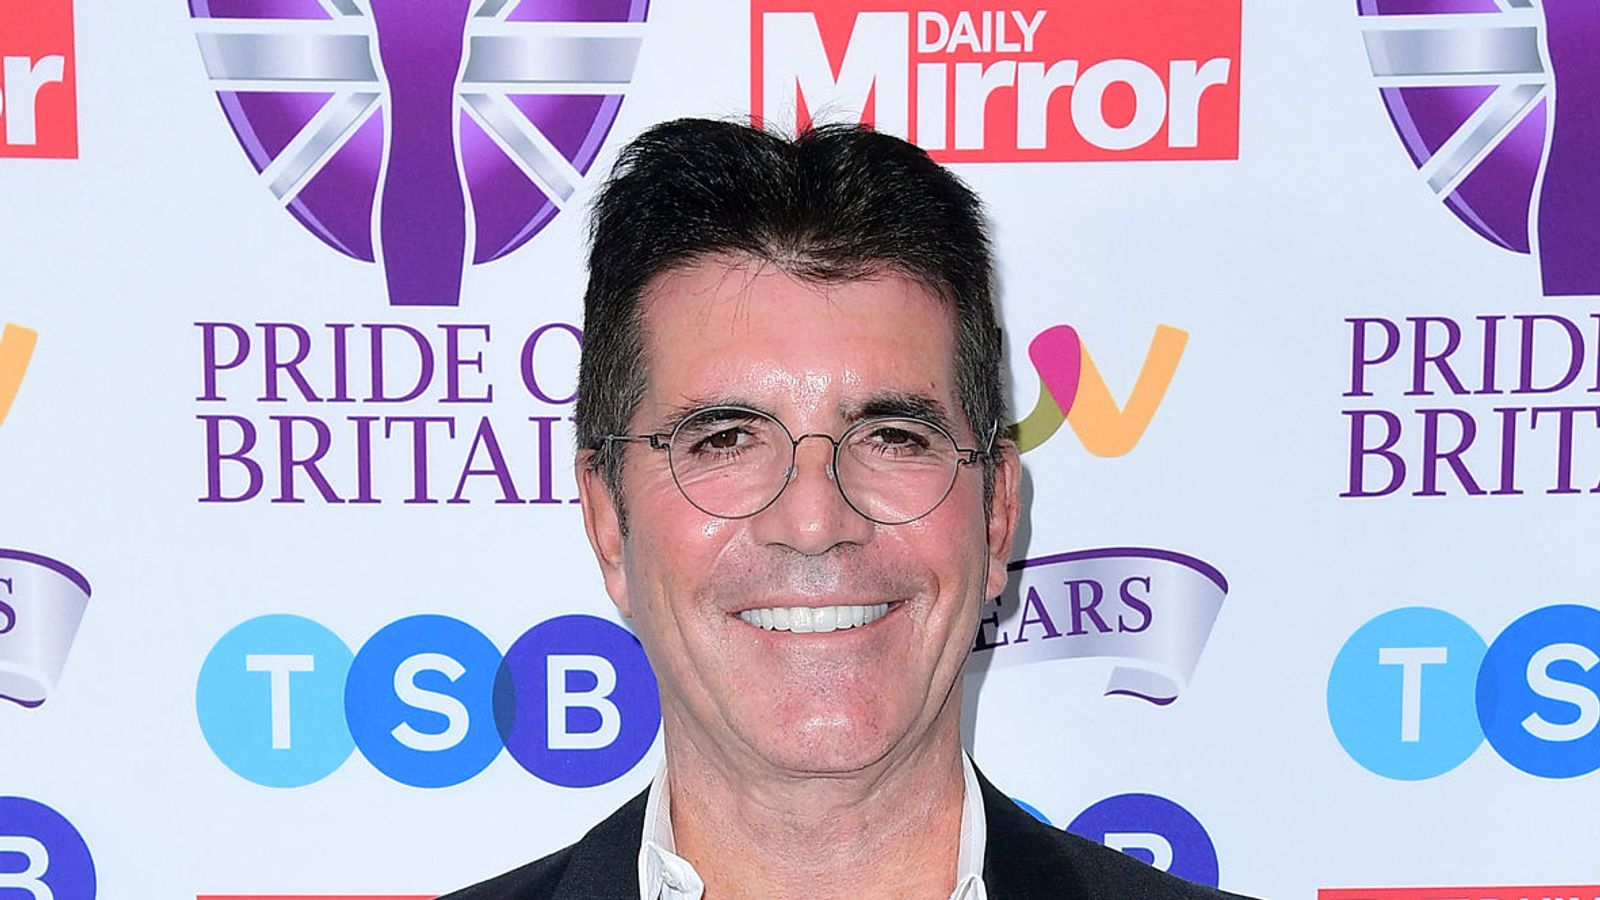 'No current plans' for another series of The X Factor, ITV confirms